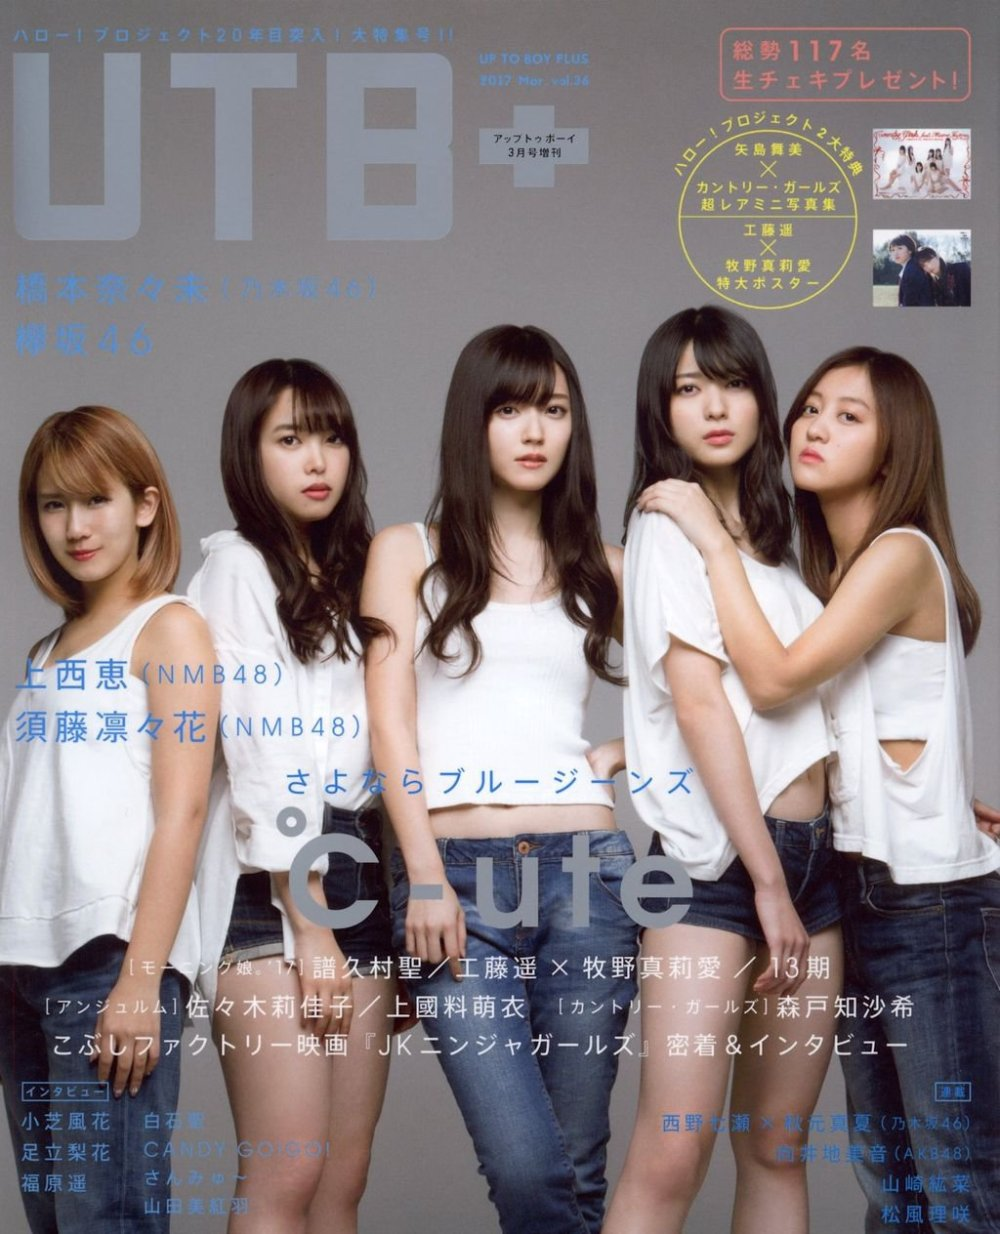 ℃-ute en la revista Up To Boy Plus (2017 vol. 36)